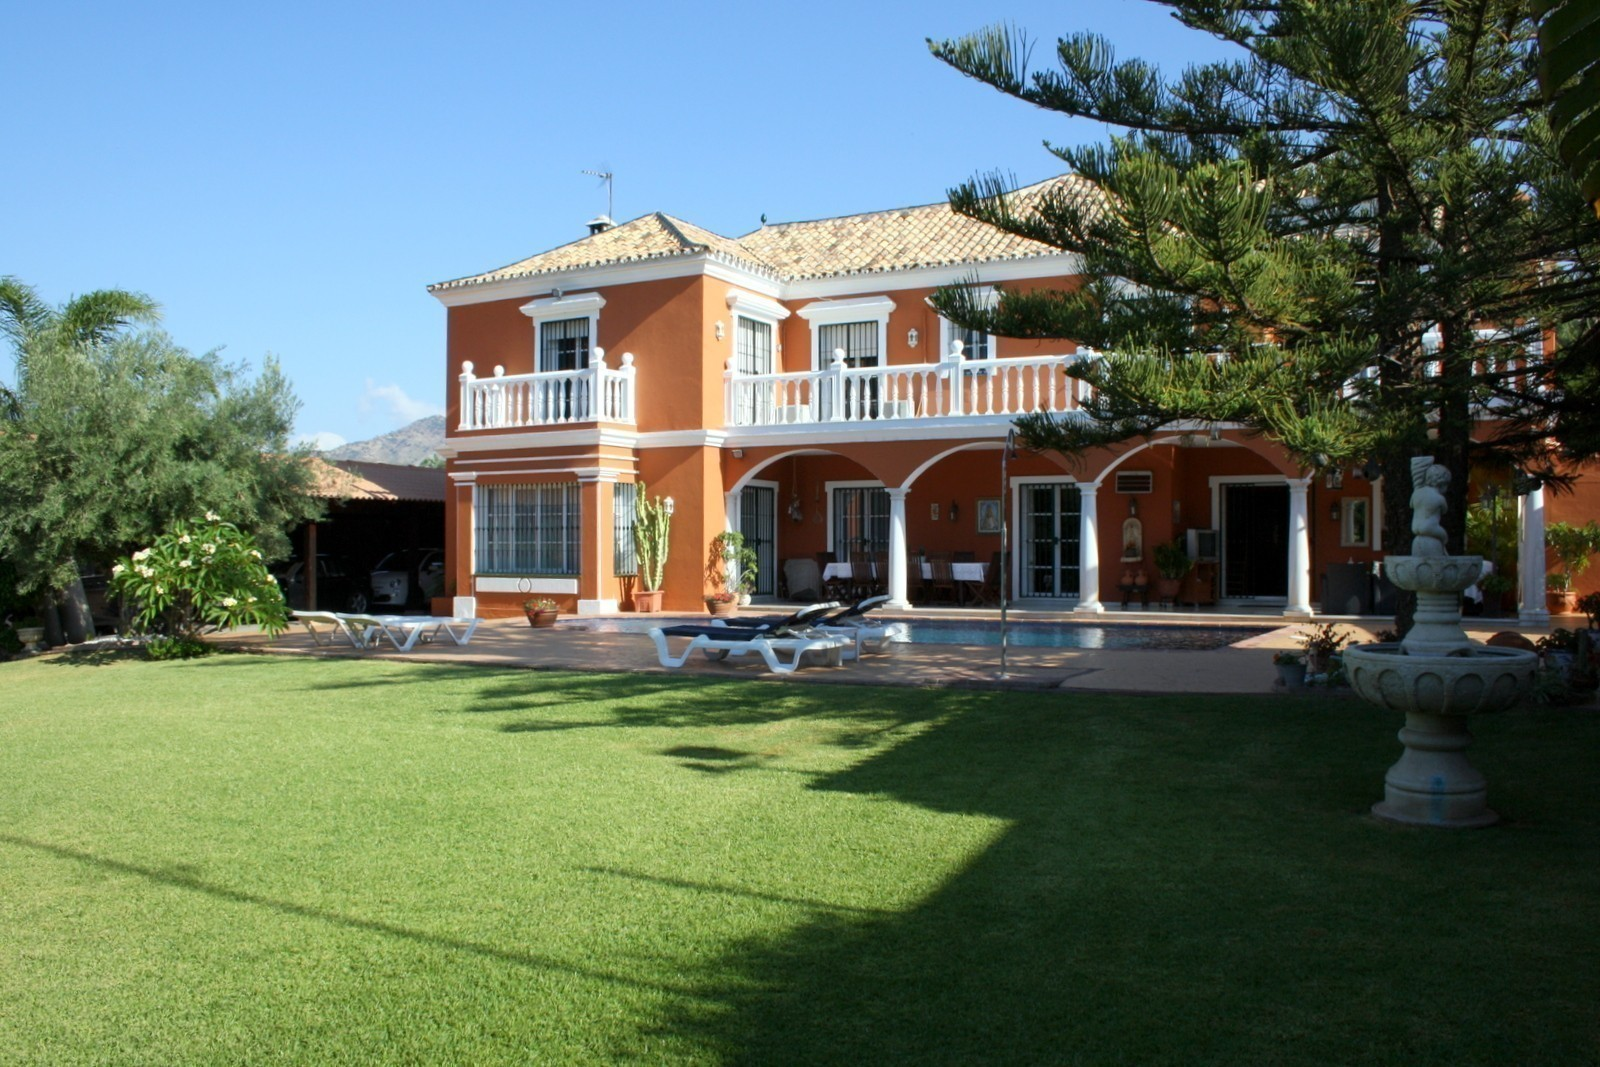 Country Style Villa with Football Pitch